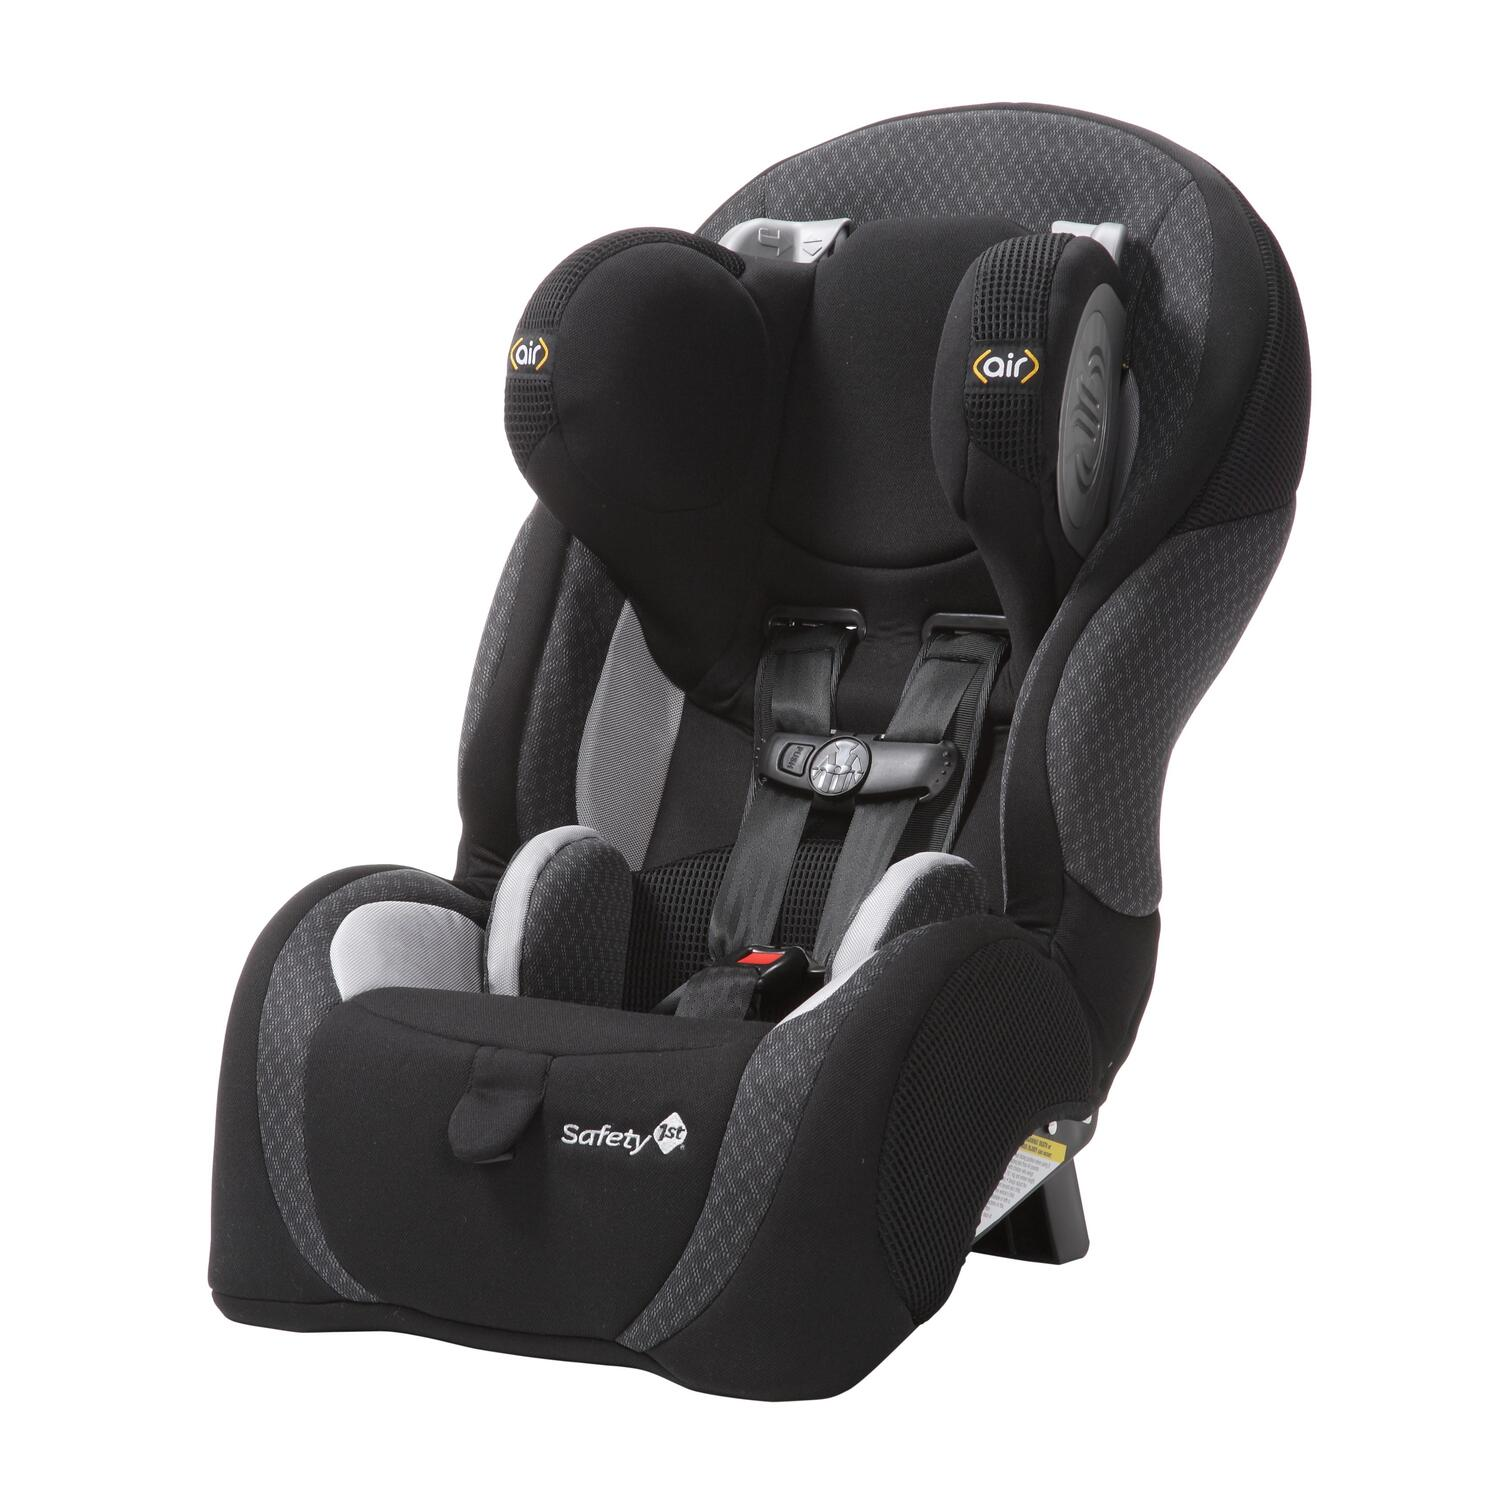 safety 1st safety 1st complete air 65 convertible car seat marshall by oj commerce cc044auc. Black Bedroom Furniture Sets. Home Design Ideas